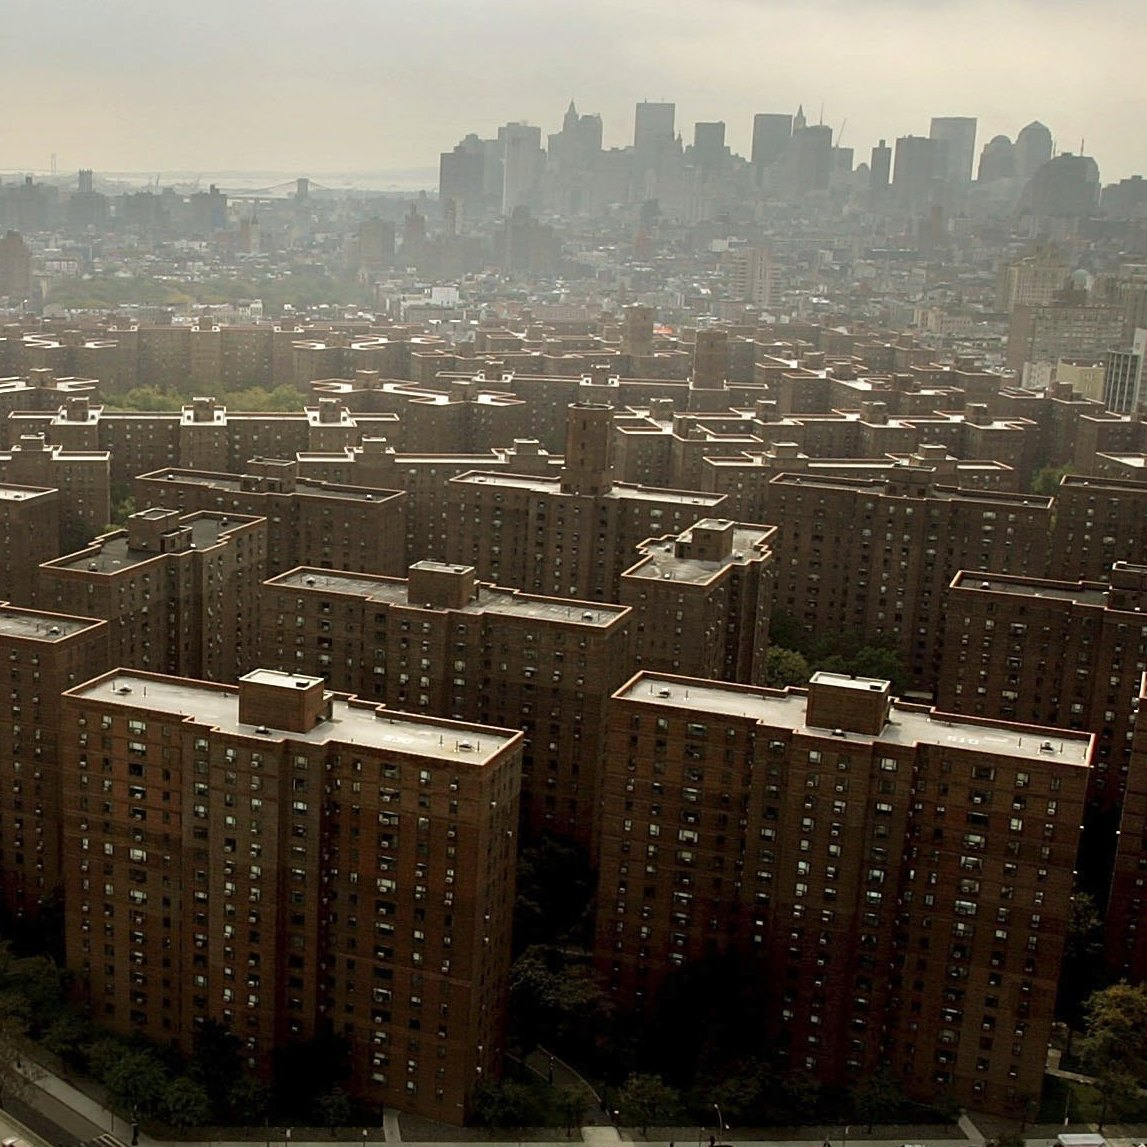 The Botched NY Real Estate Deal That Lost 'Other People